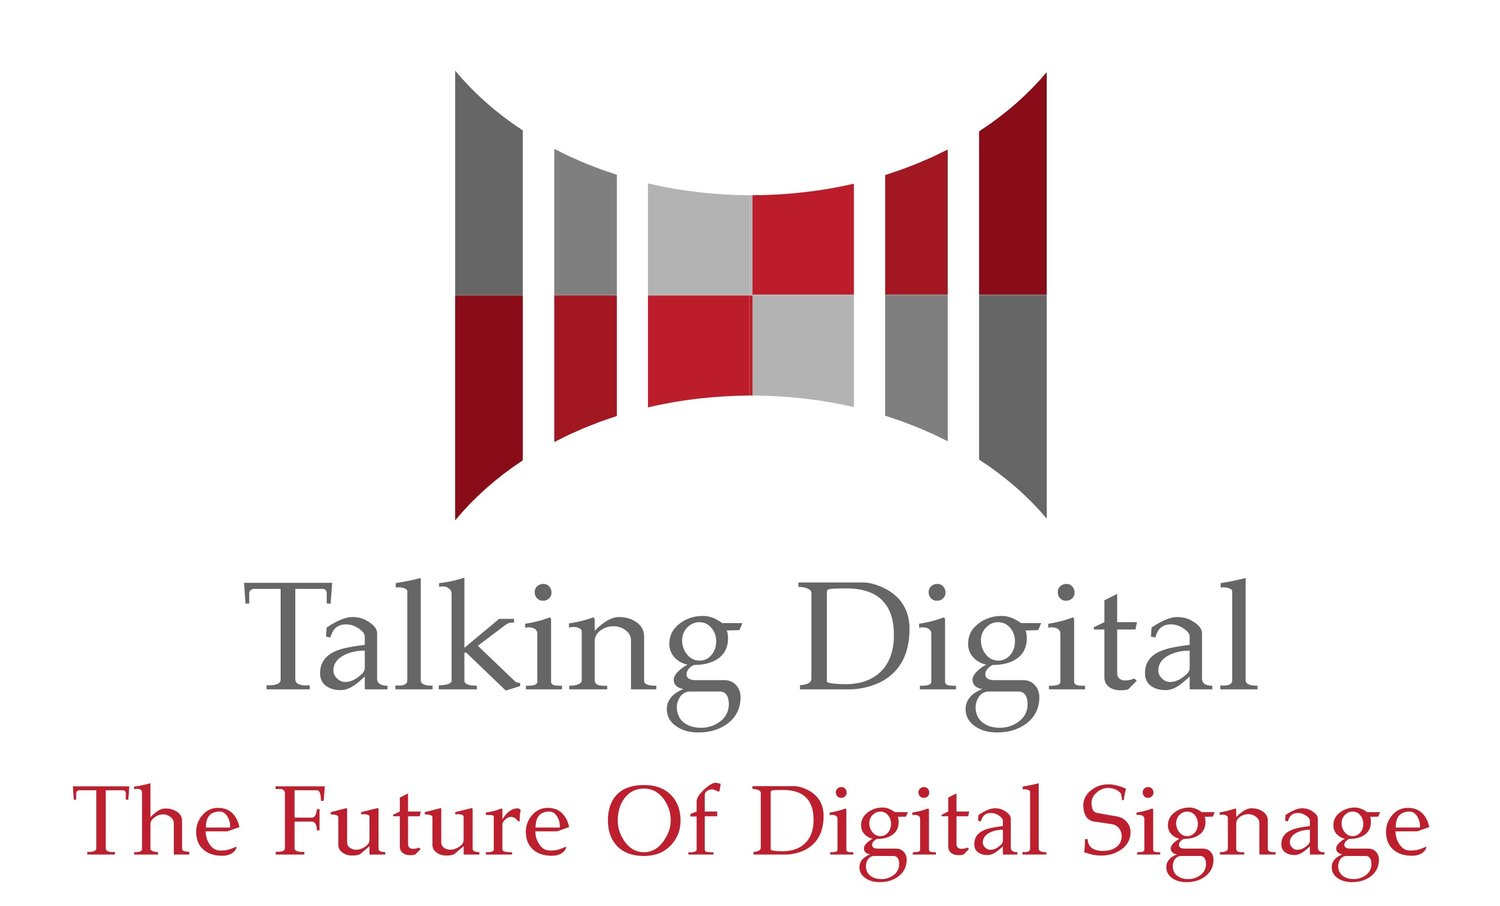 Talking Digital